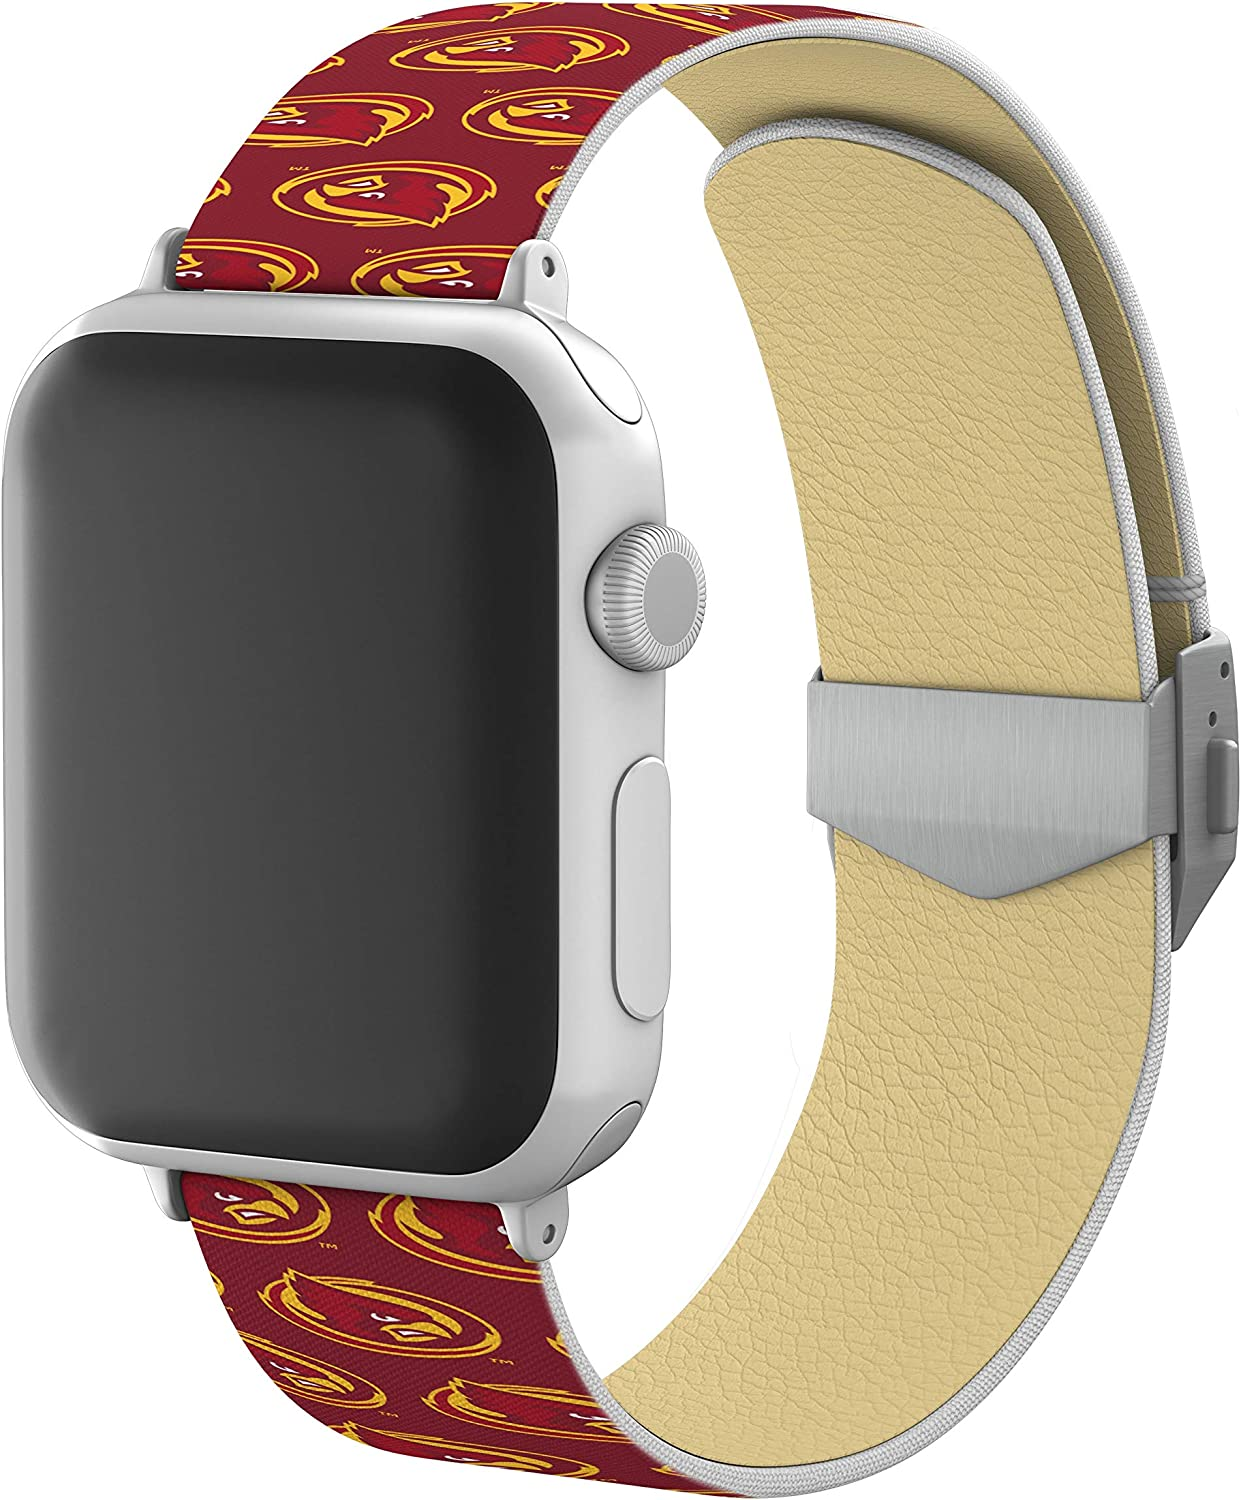 AFFINITY BANDS Iowa State Cyclones Full Print Watch Band with Engraved Buckle Compatible with Apple Watch - 42mm/44mm Repeating Logo